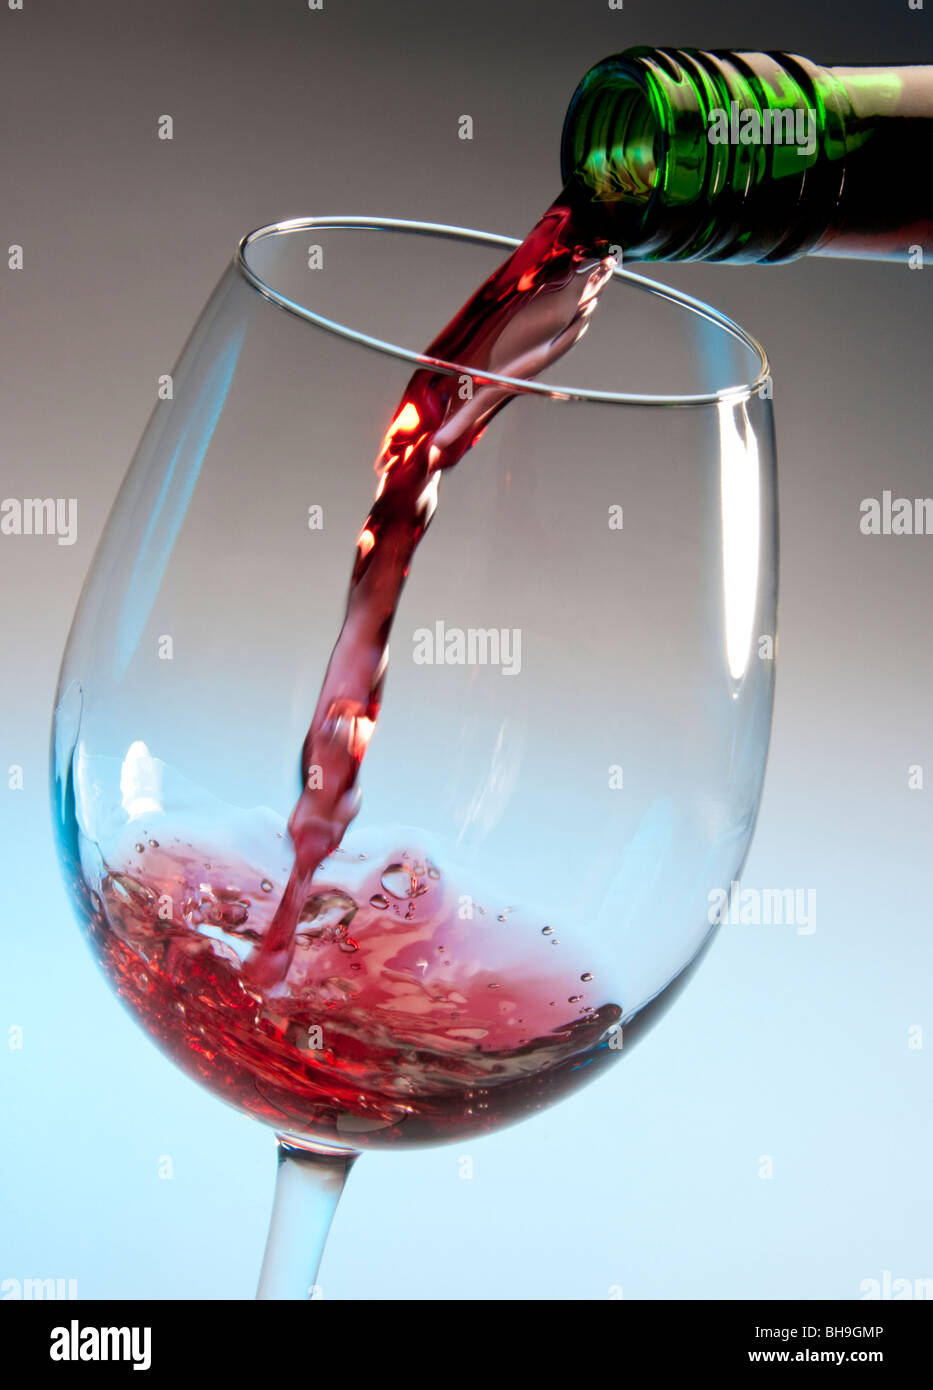 Pouring red wine into a glass - Stock Image